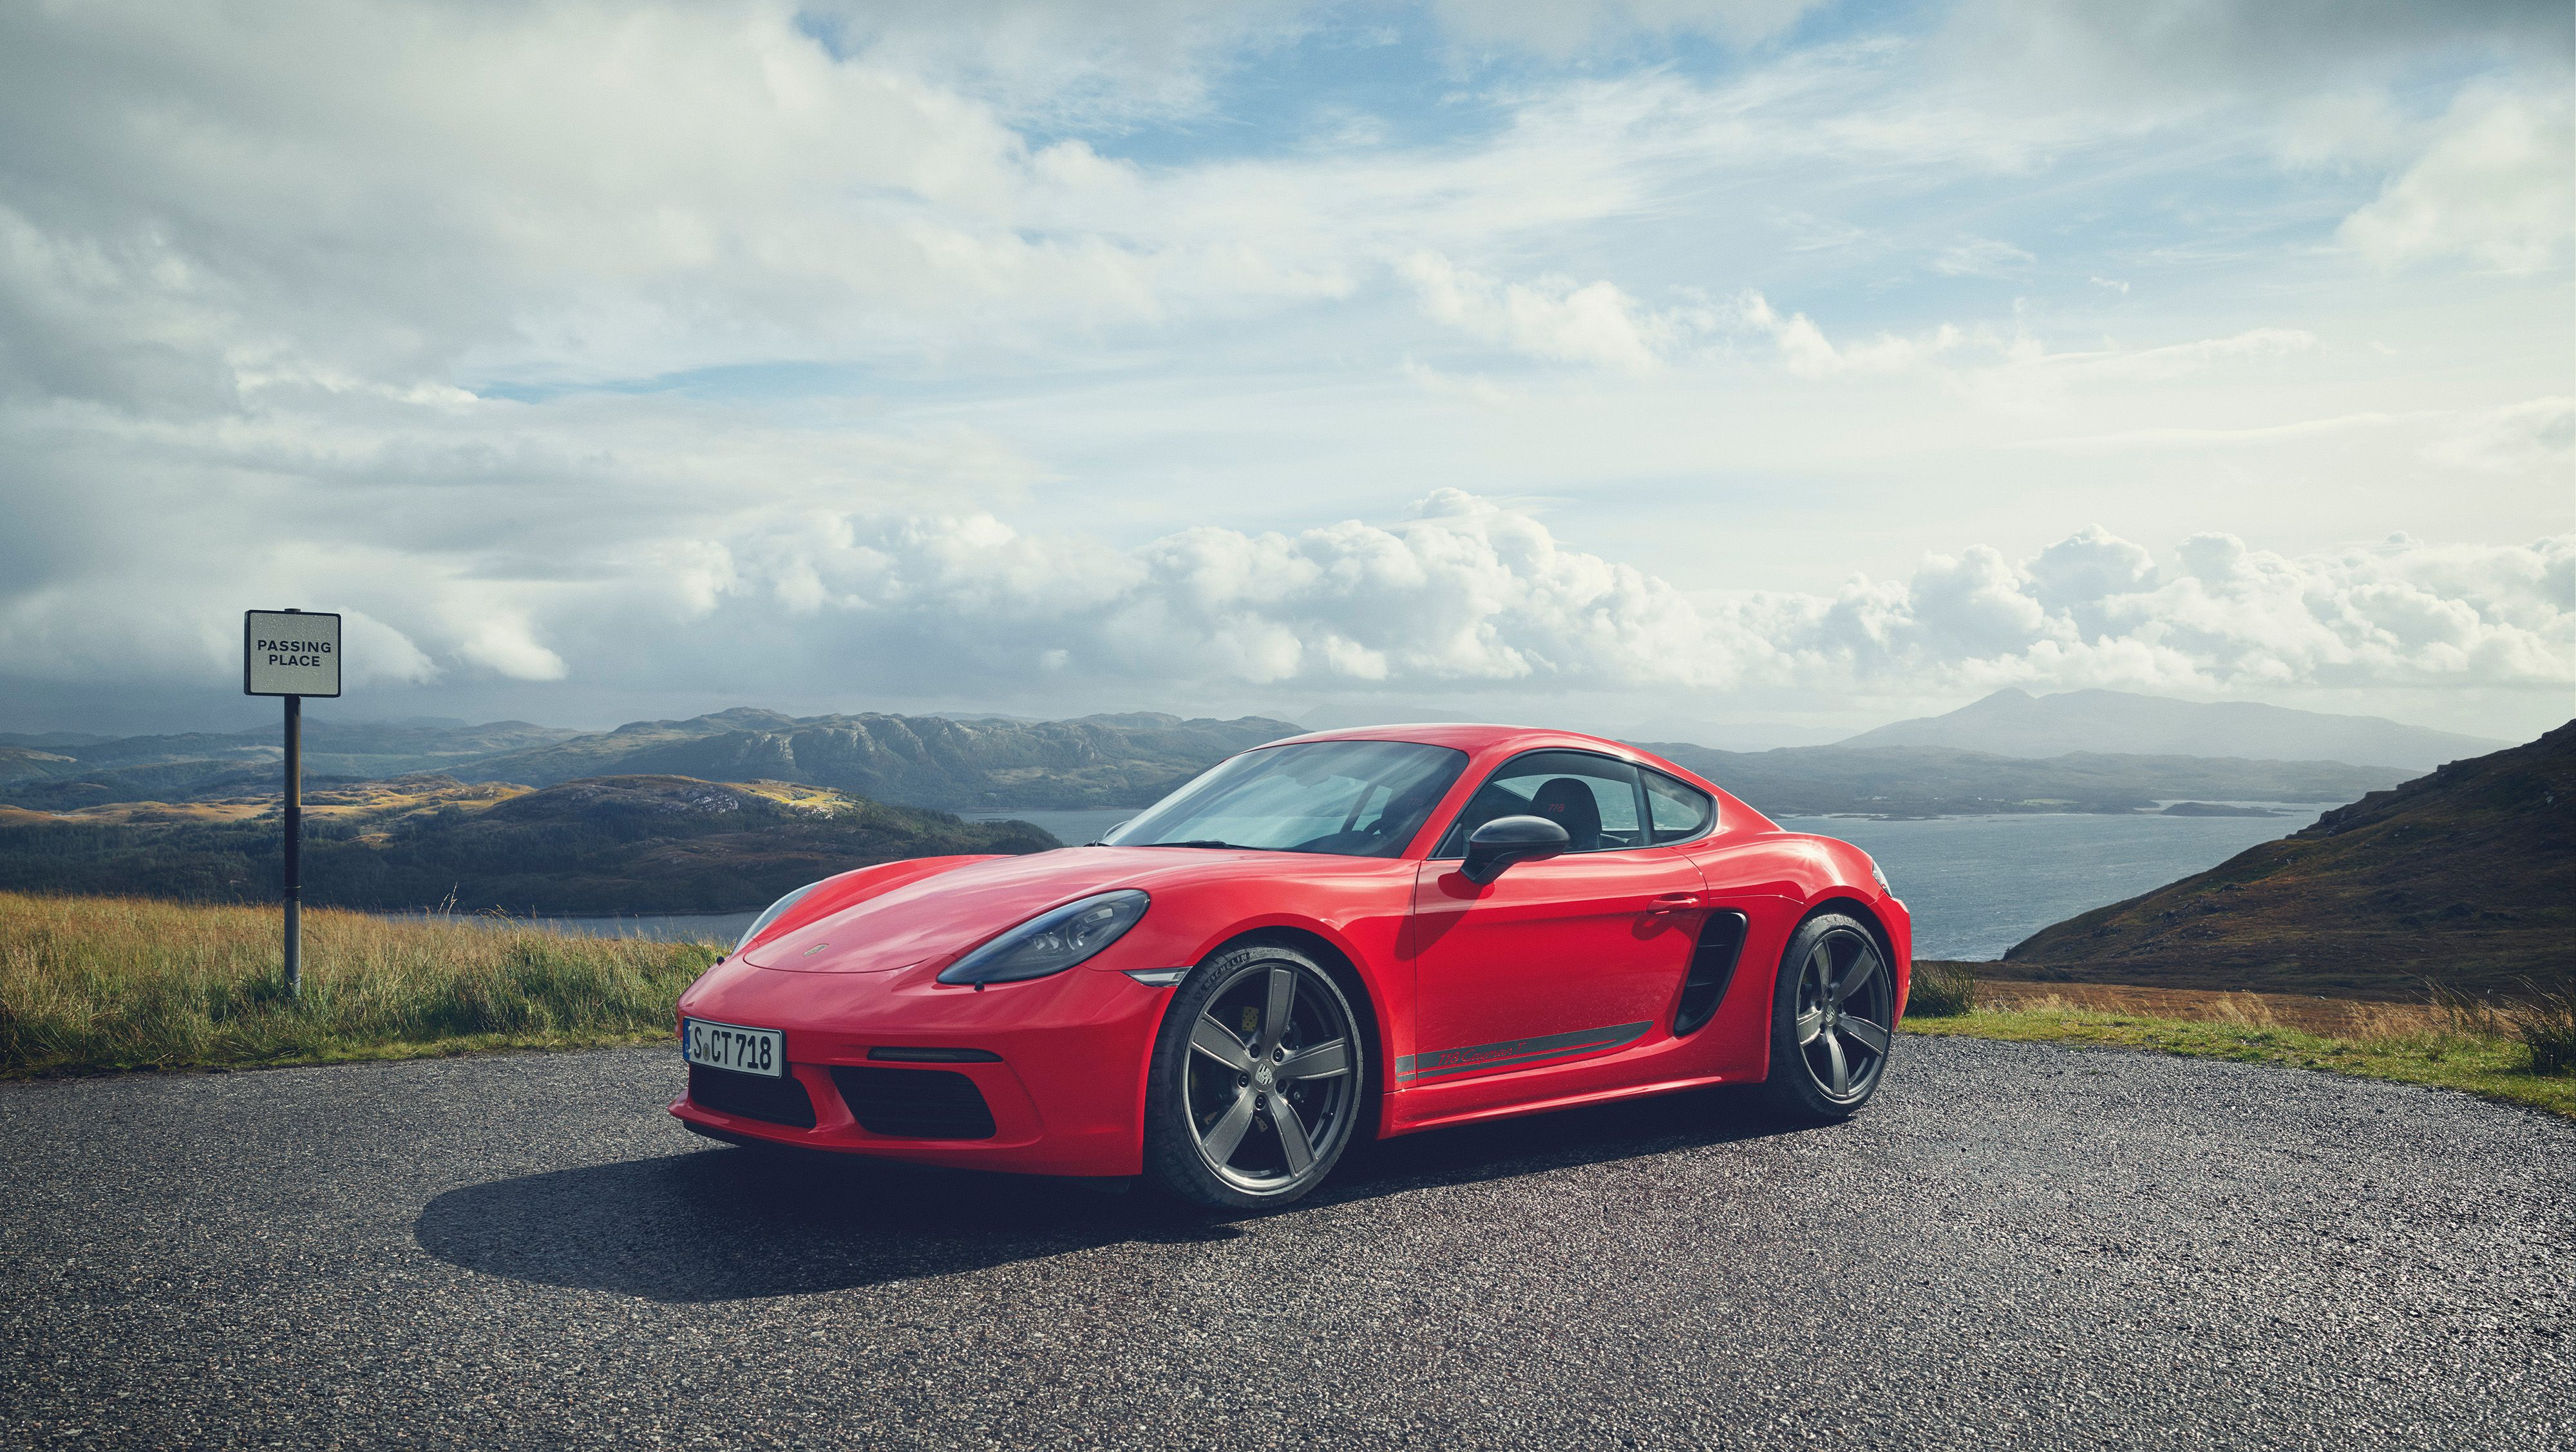 2020 Porsche 718 Cayman Review, Pricing, and Specs